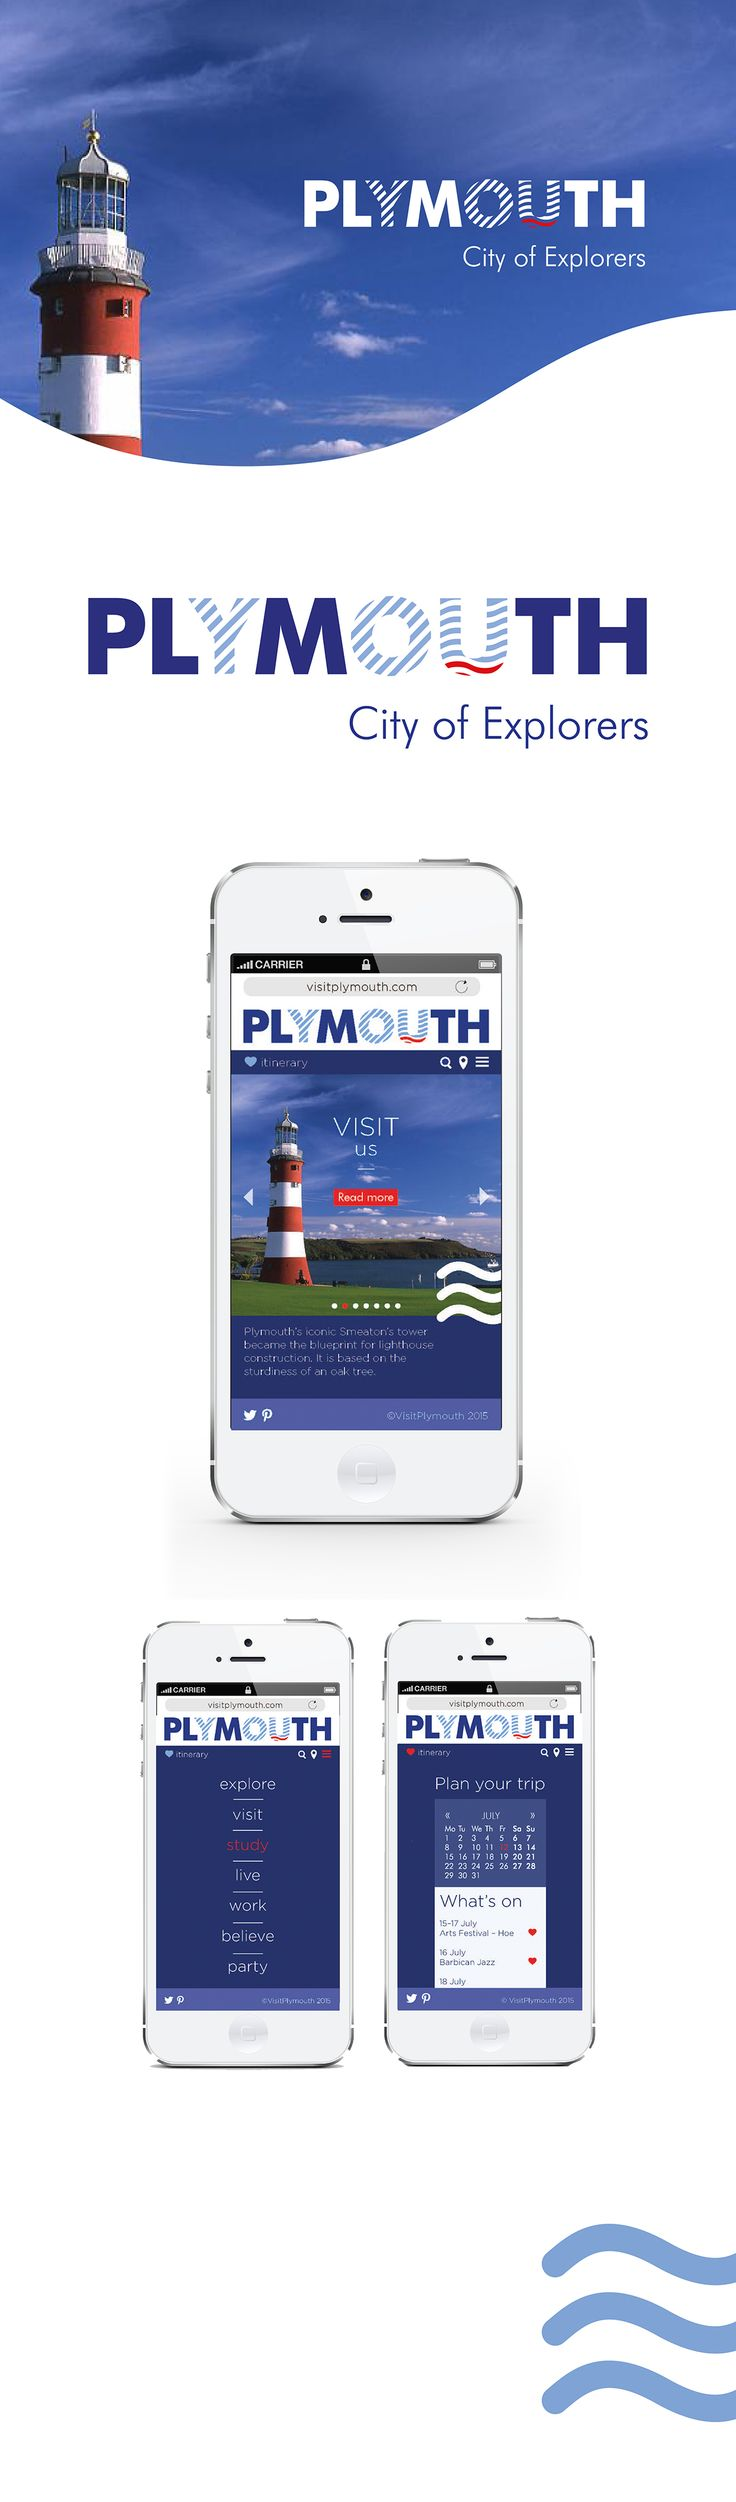 city branding and app for Plymouth, UK